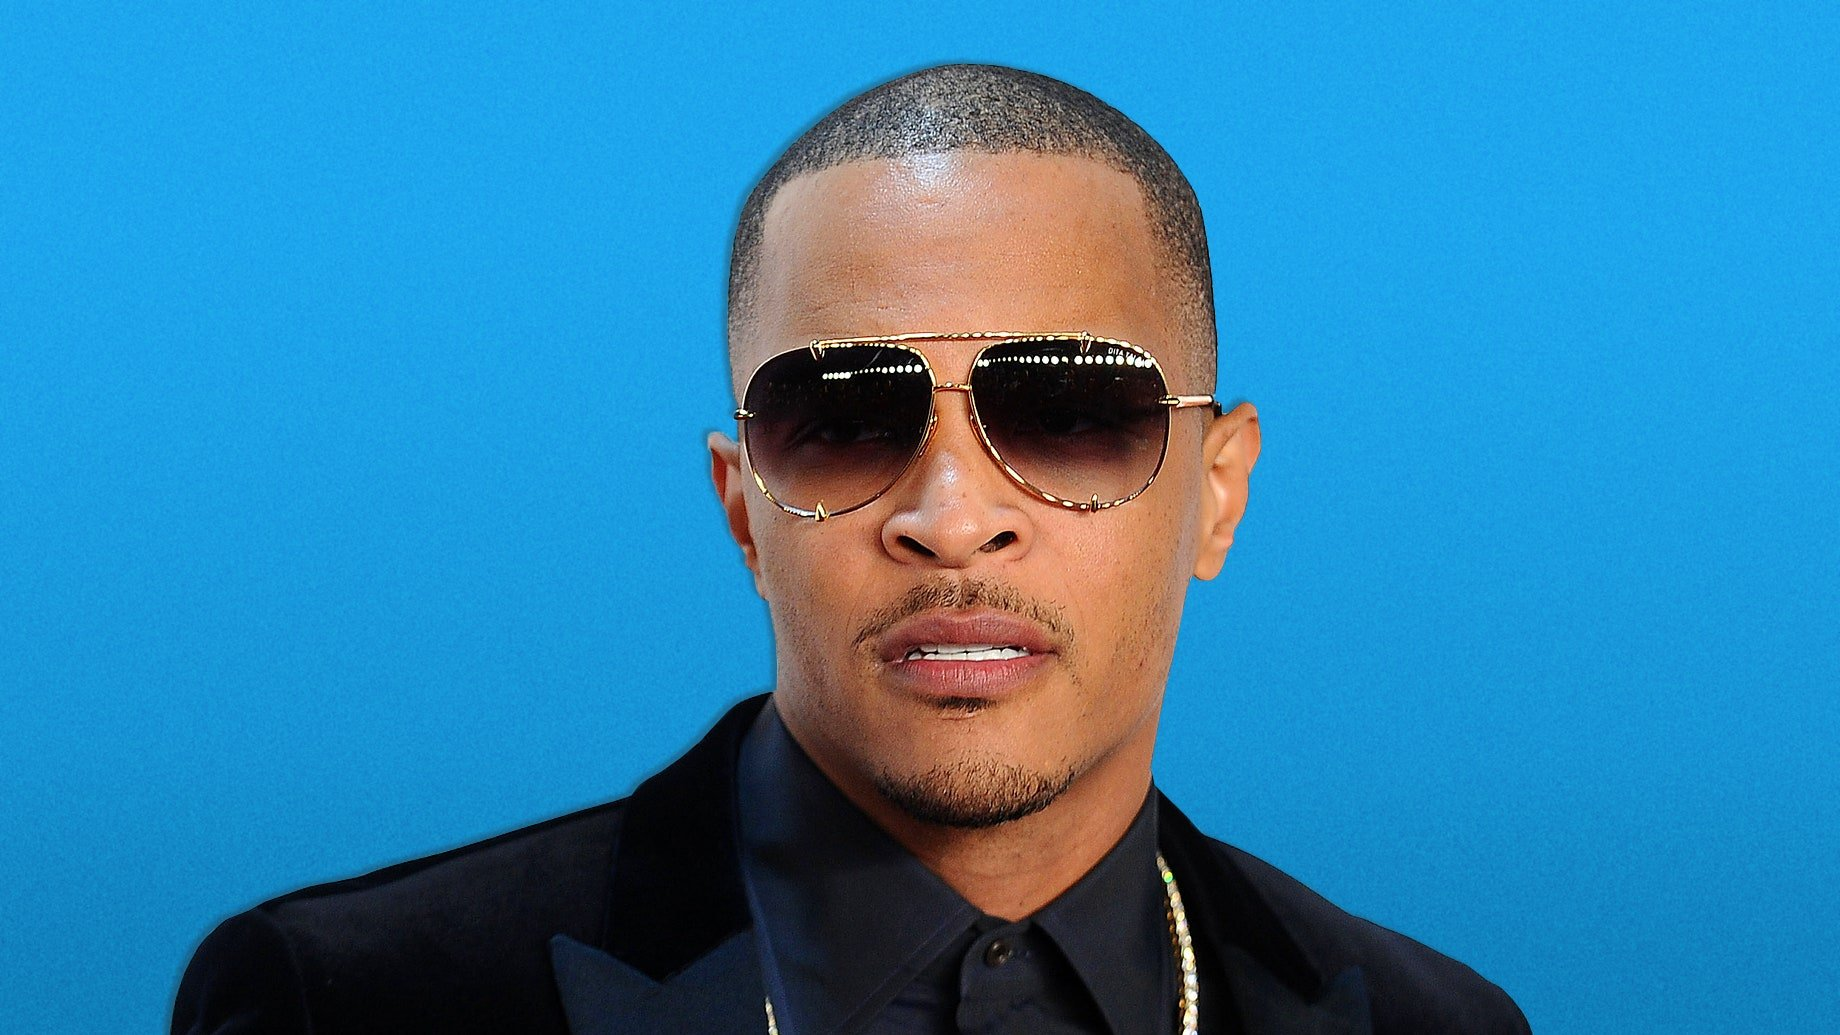 T.I. Shares An Important Video About The Debate Between President Donald Trump And Joe Biden